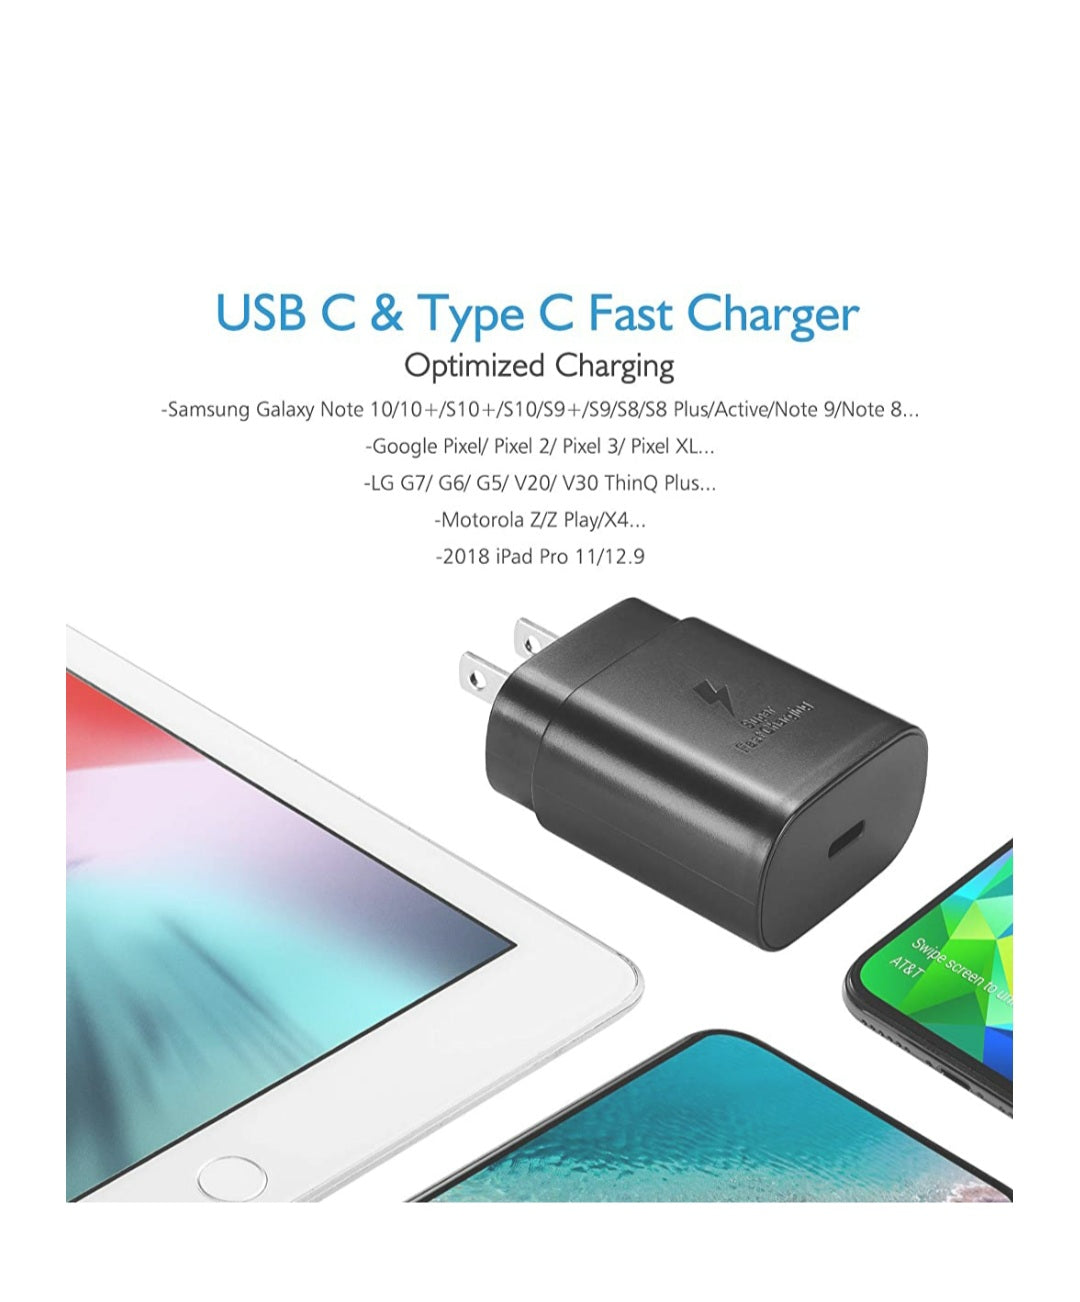 USB C Charger-25W Wall Charger Fast Charging